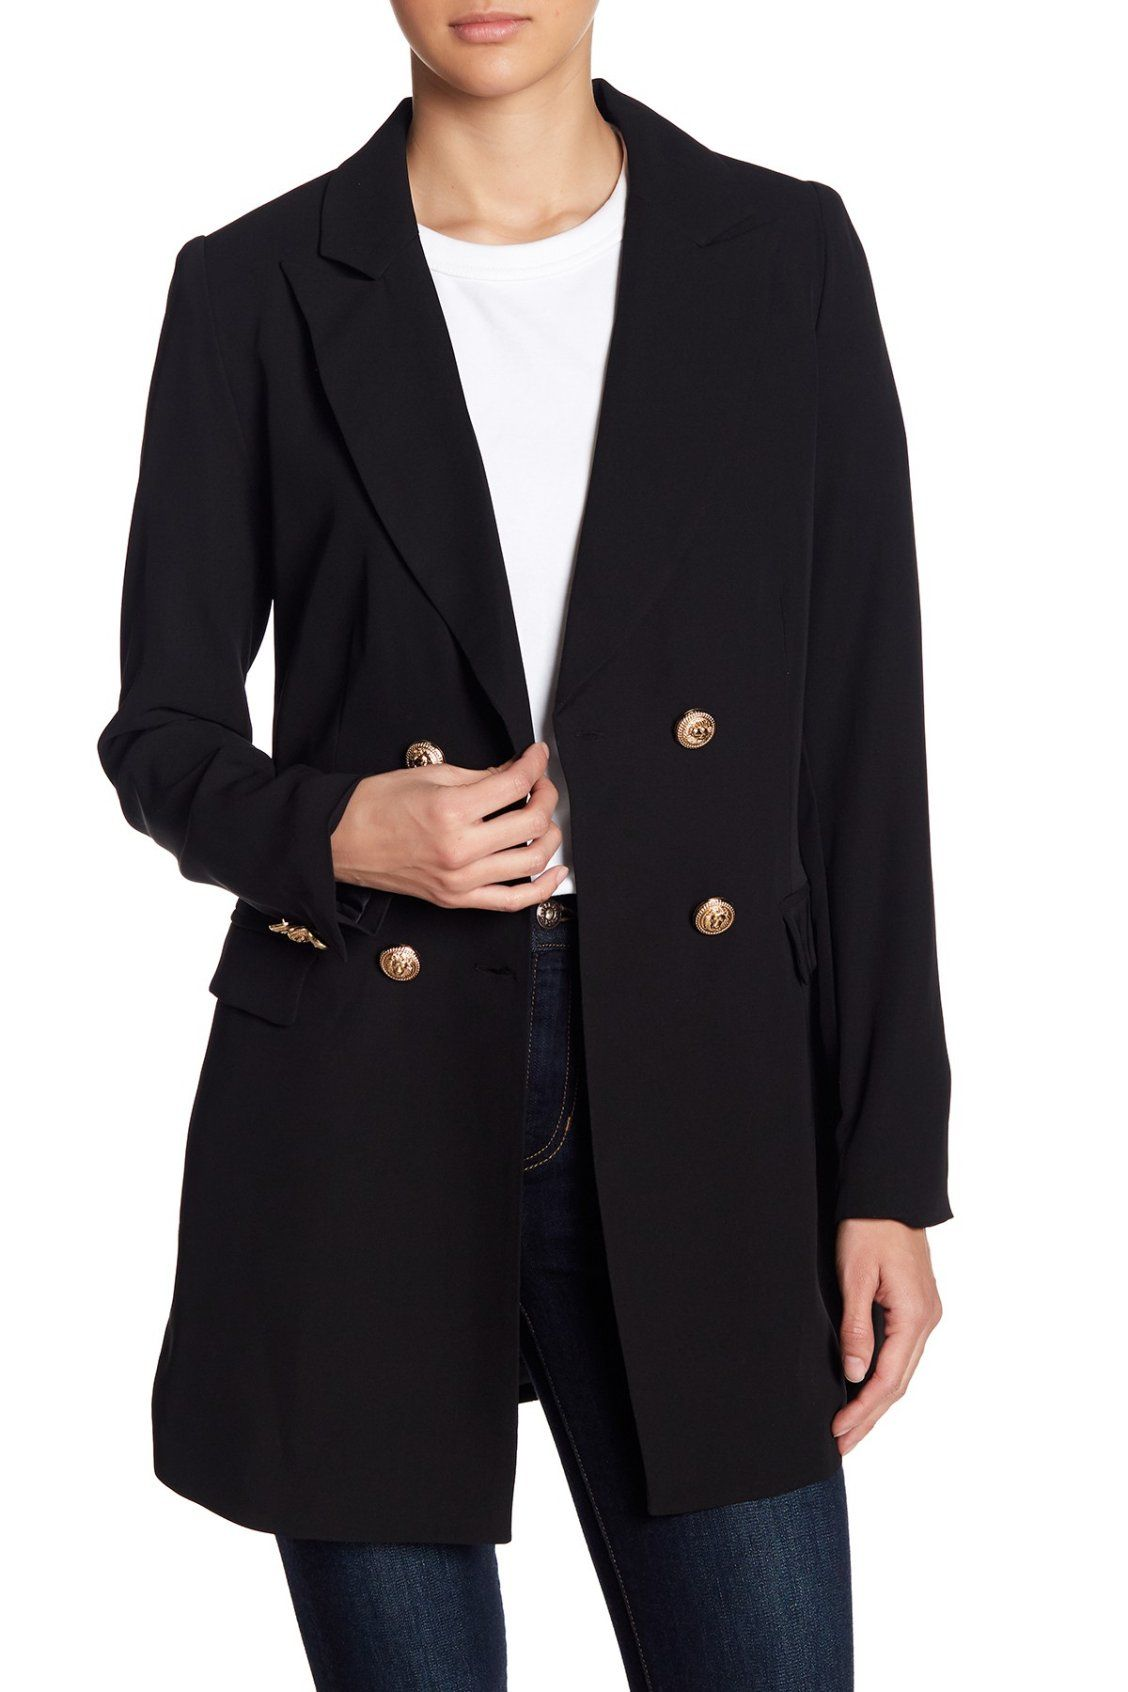 Classic Romeo   Juliet Couture Double Breasted Notch Collar Coat ... 26d49228ec176